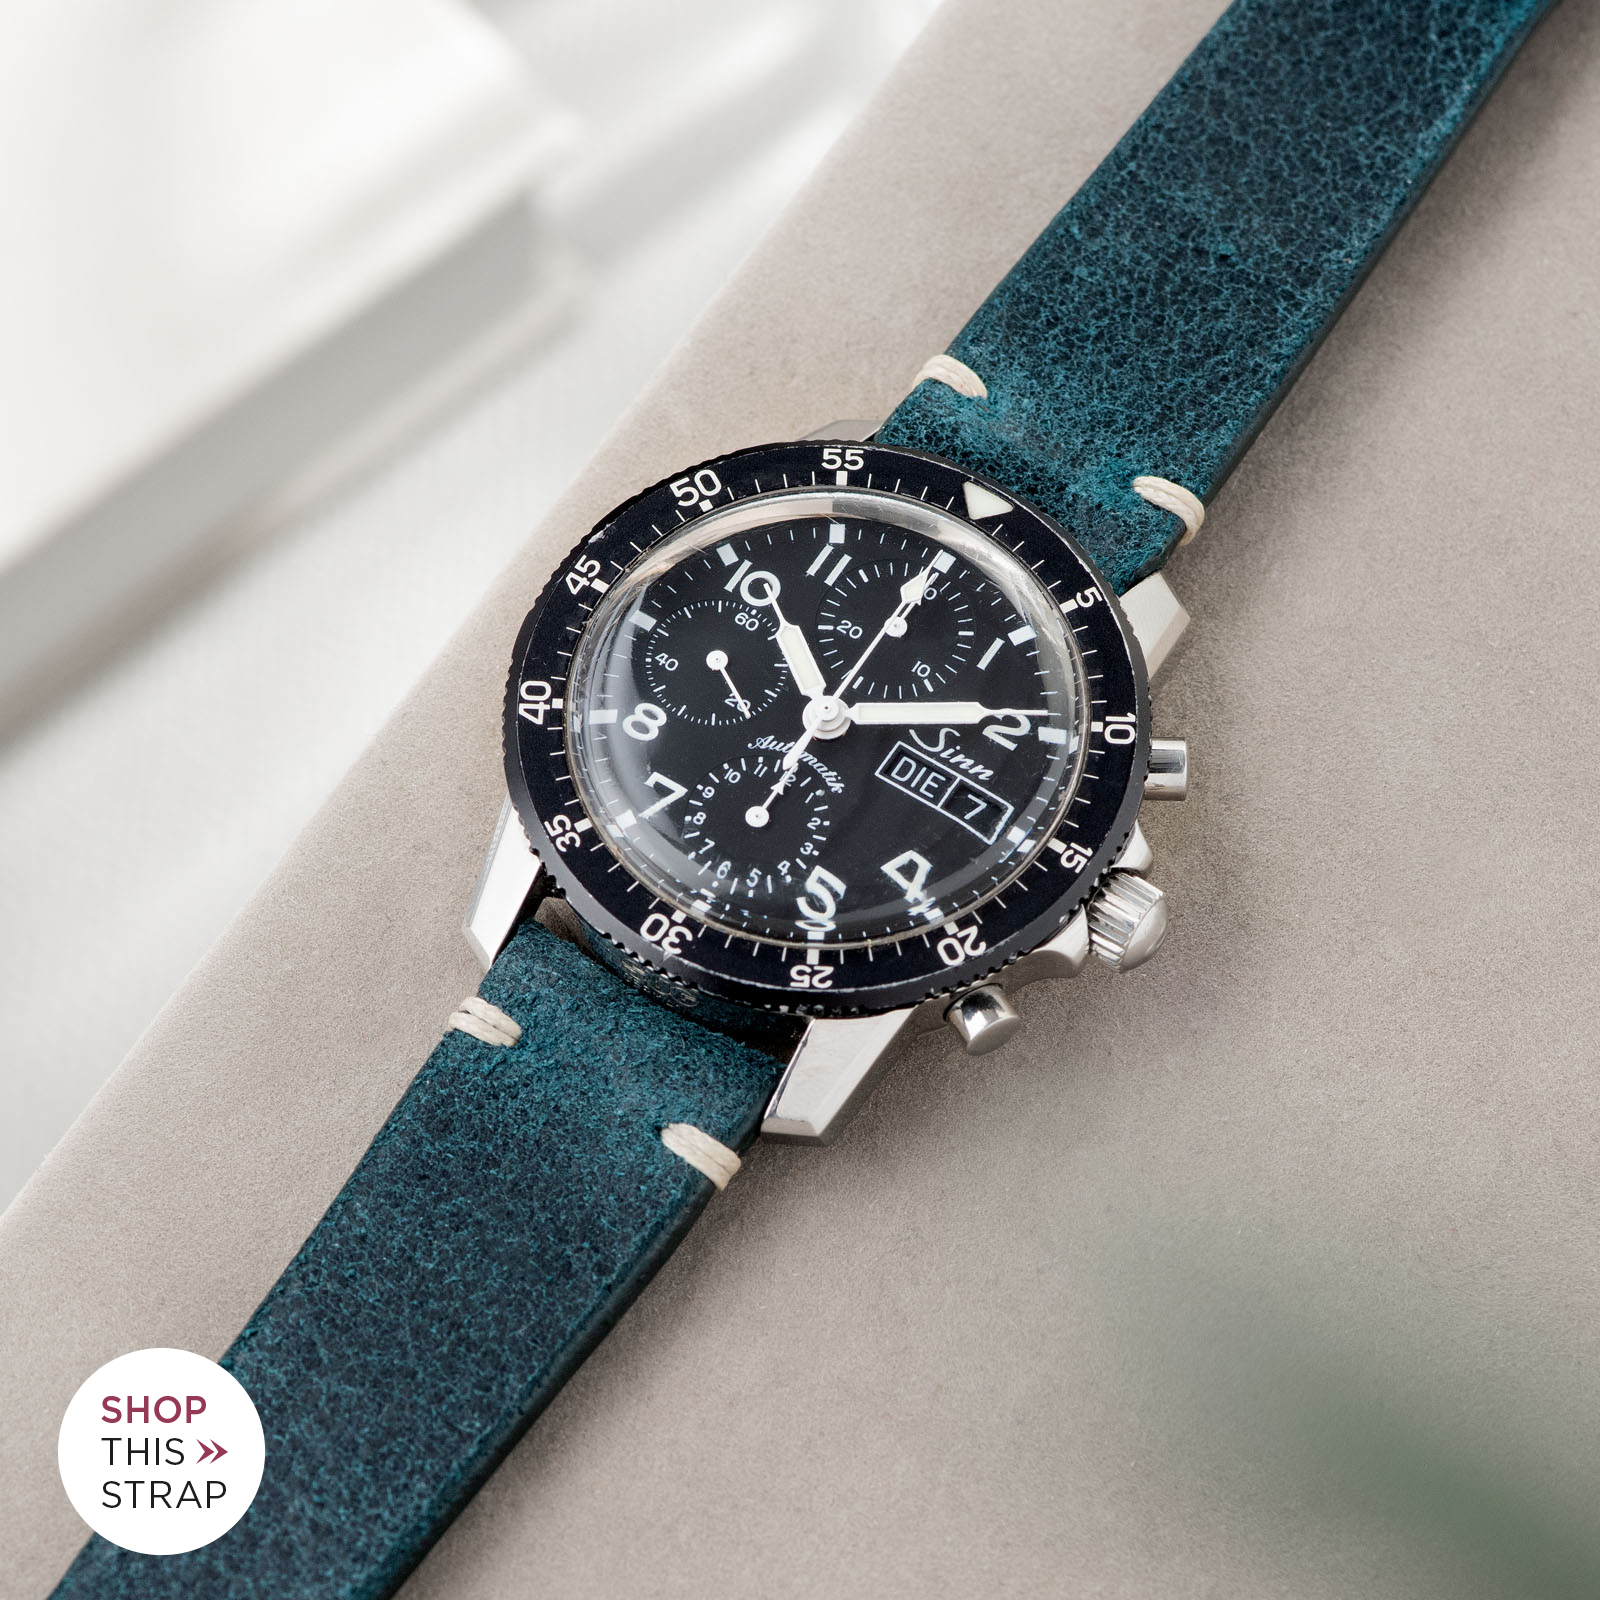 Bulang and Sons_Strap Guide_Sinn 103_Crackle Copper Green Leather Watch Strap